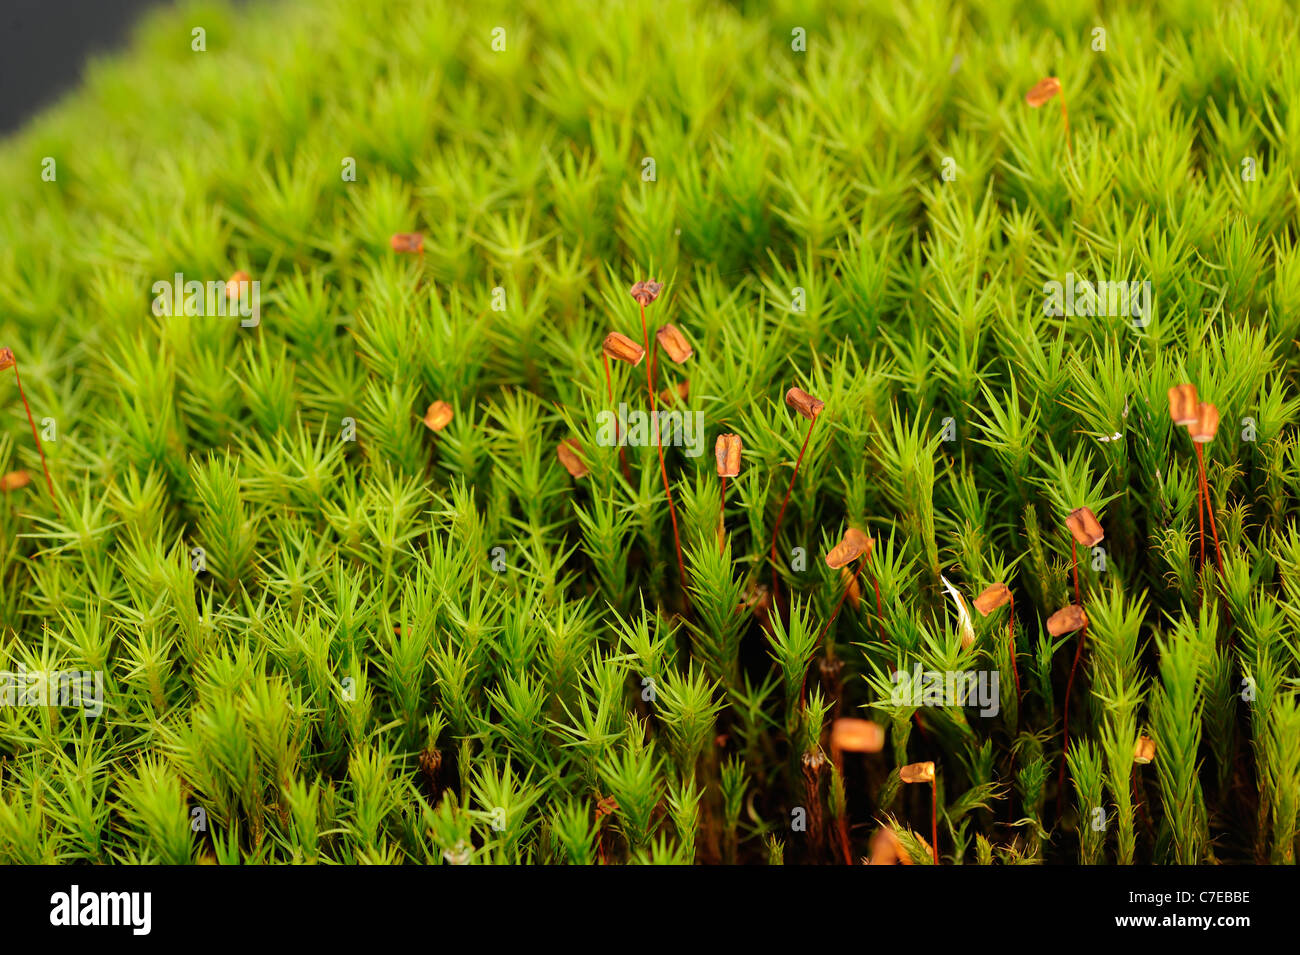 hight resolution of common haircap moss polytrichum commune capsules stock image